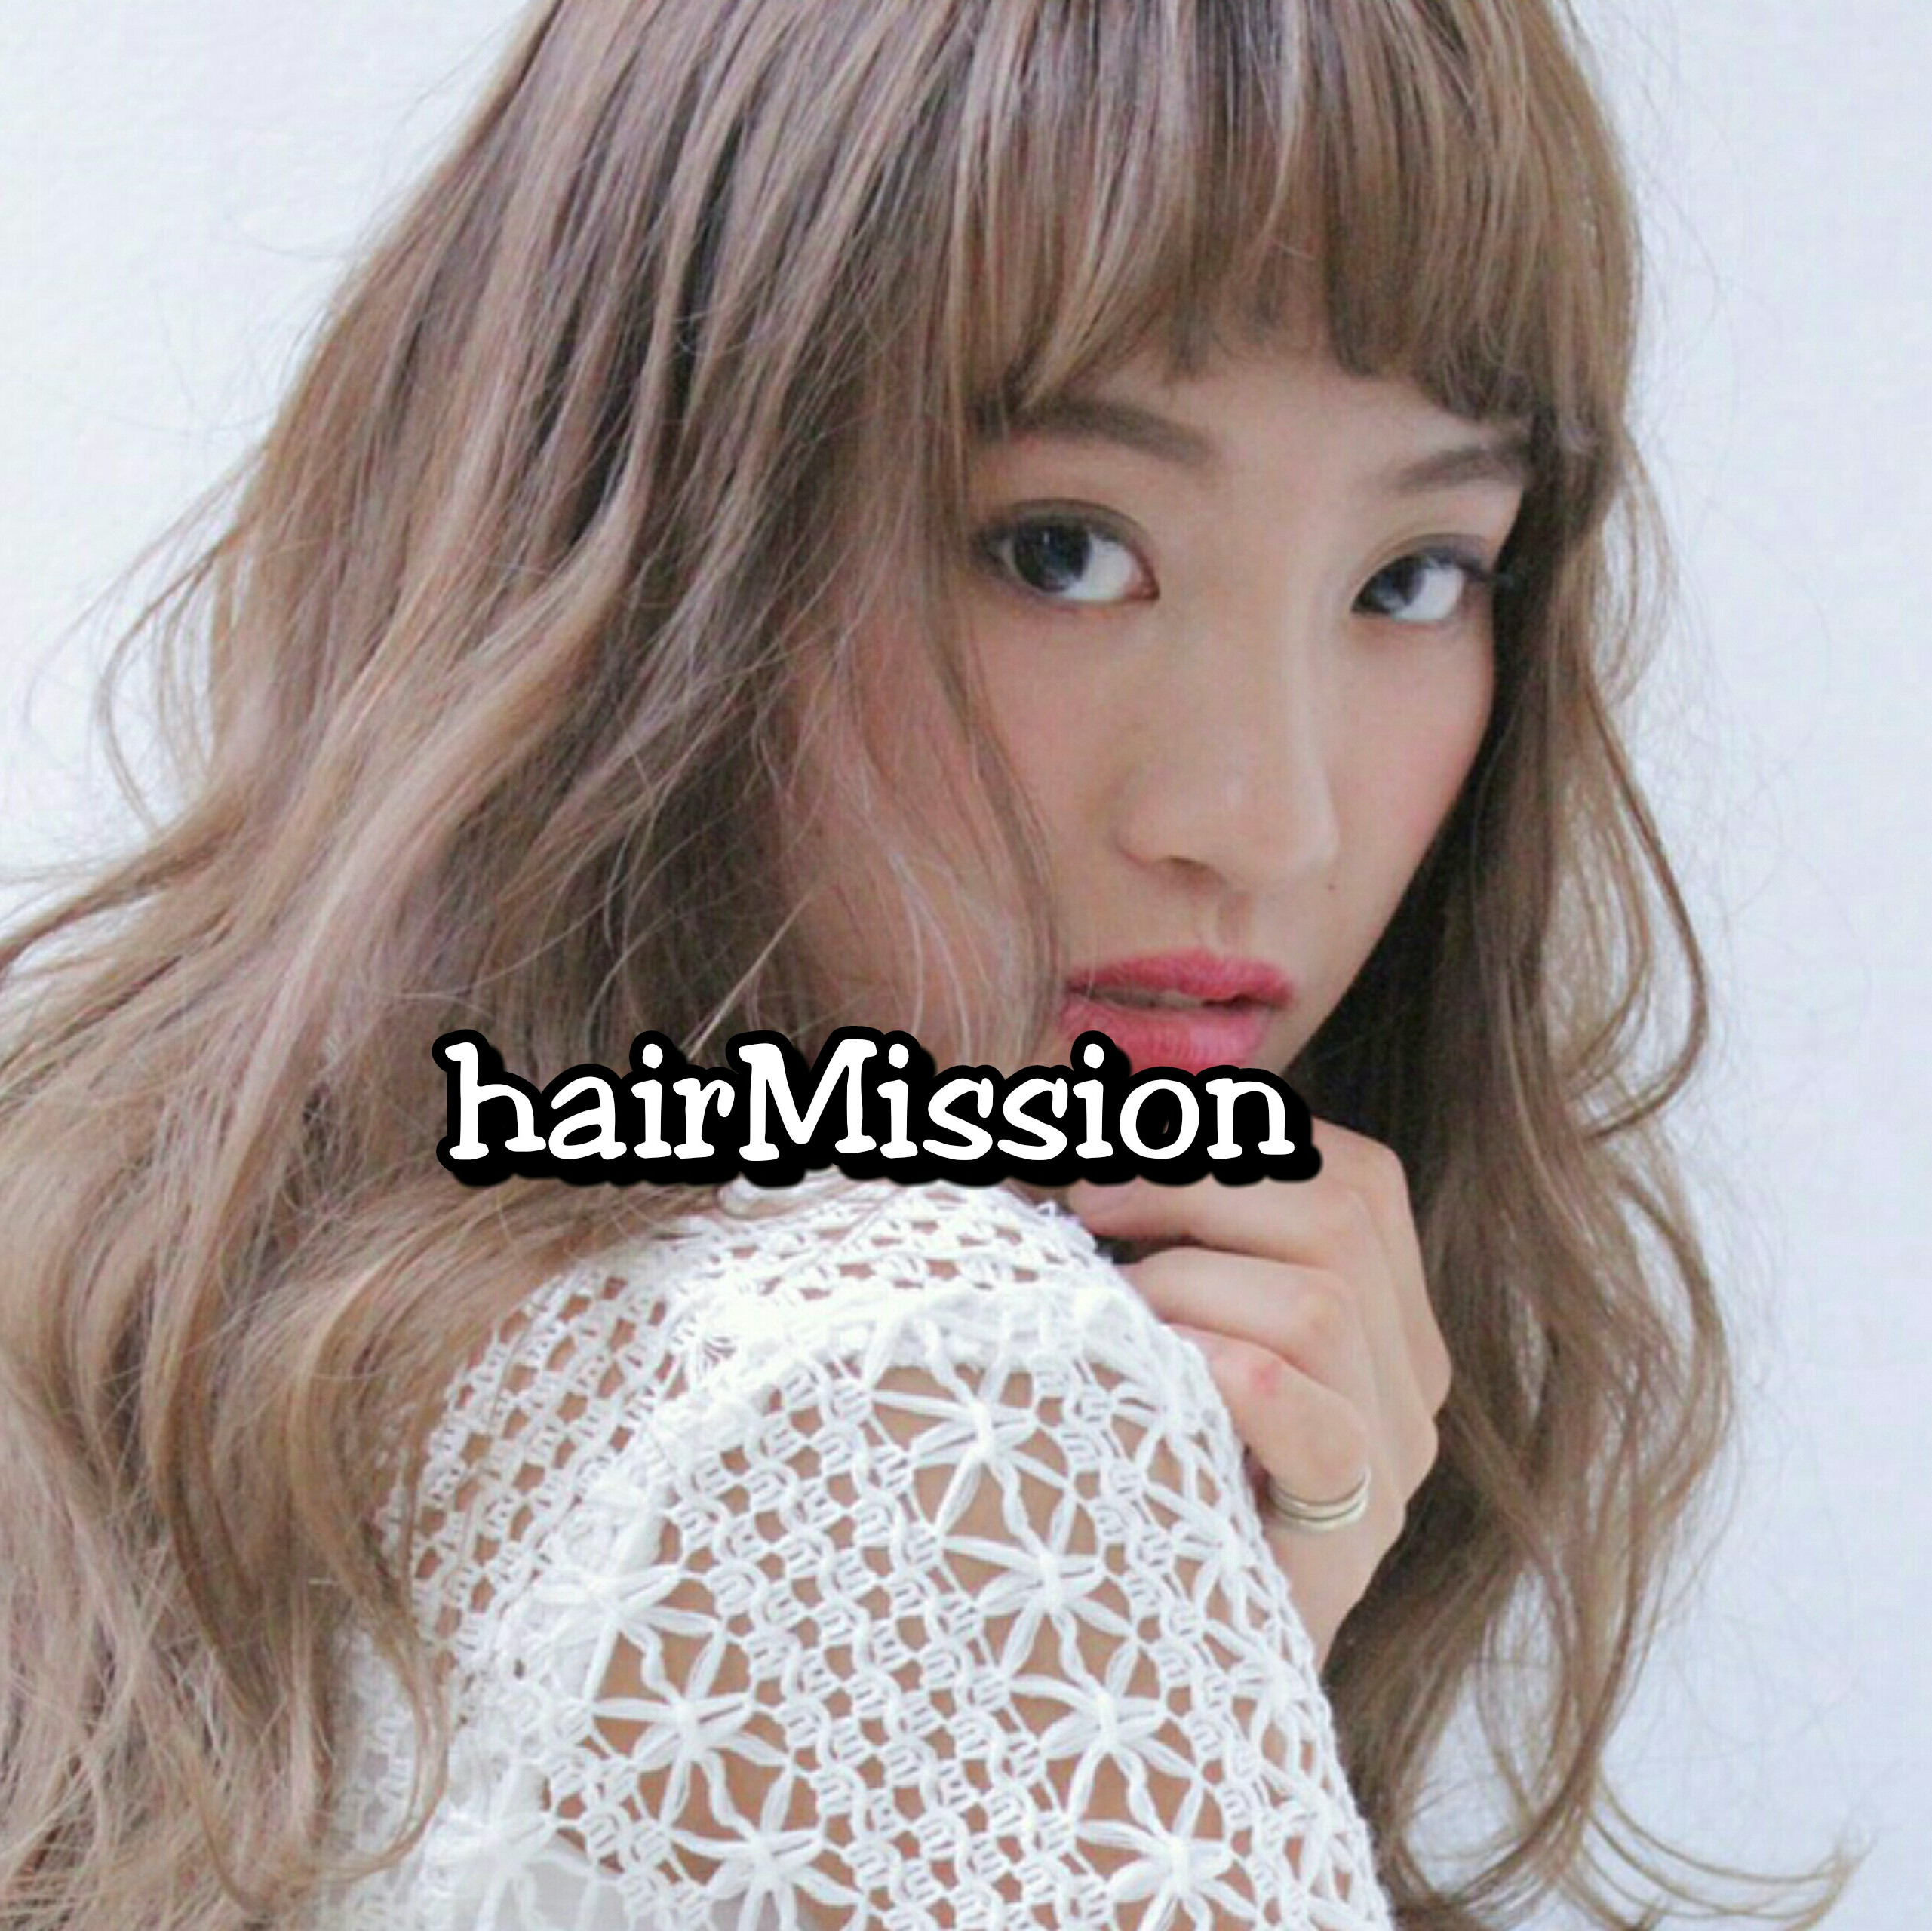 hairMission shinsaibashi